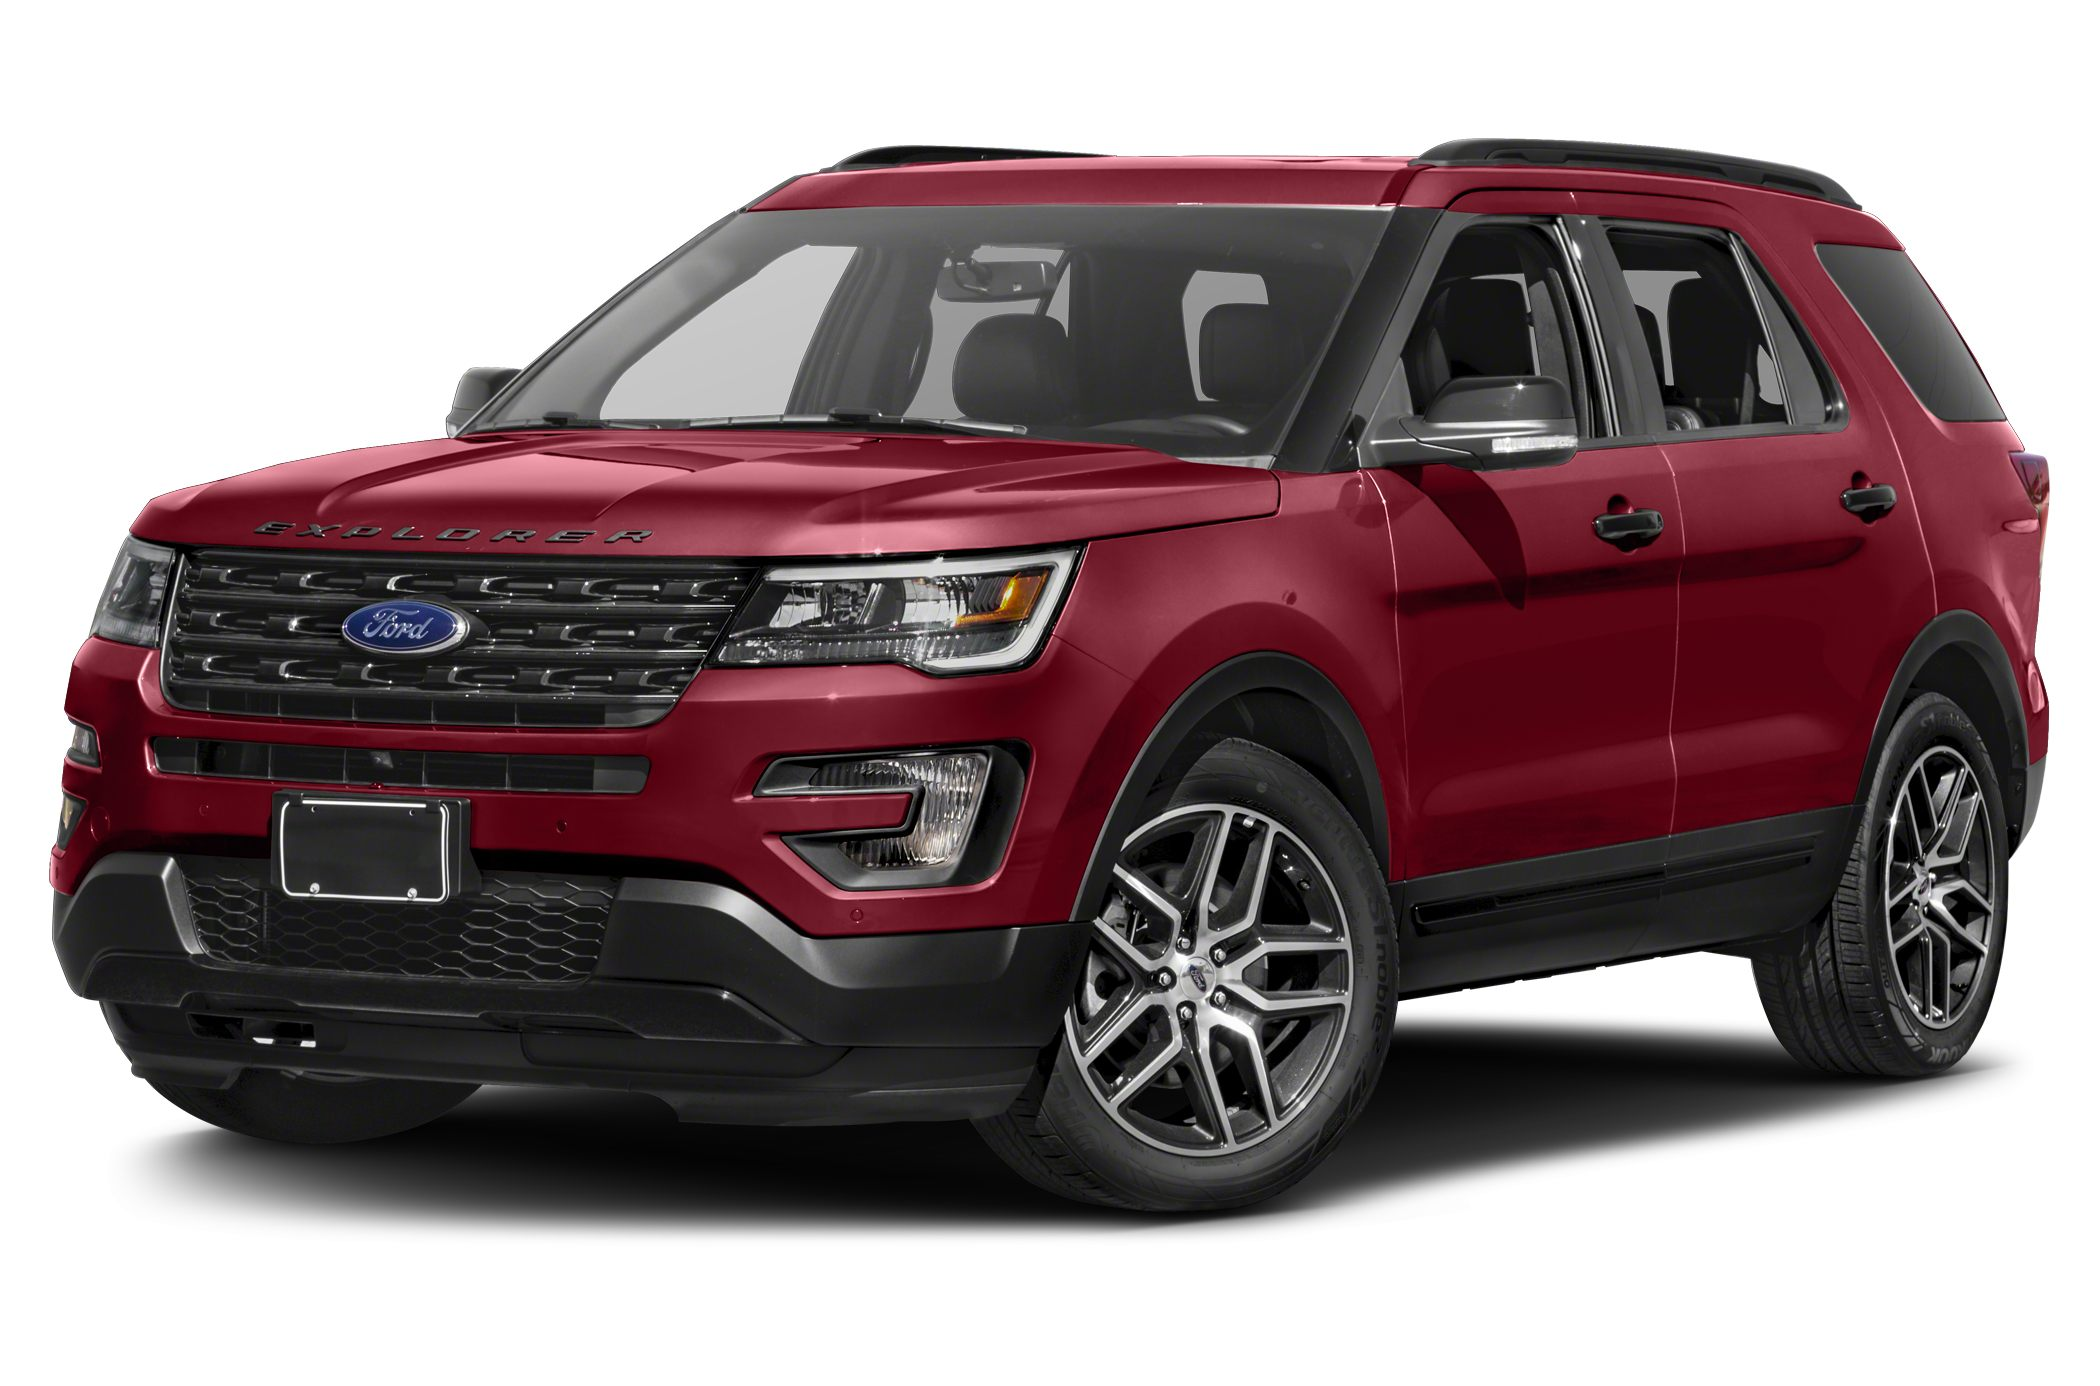 2017 ford explorer sport 4dr 4x4 pictures